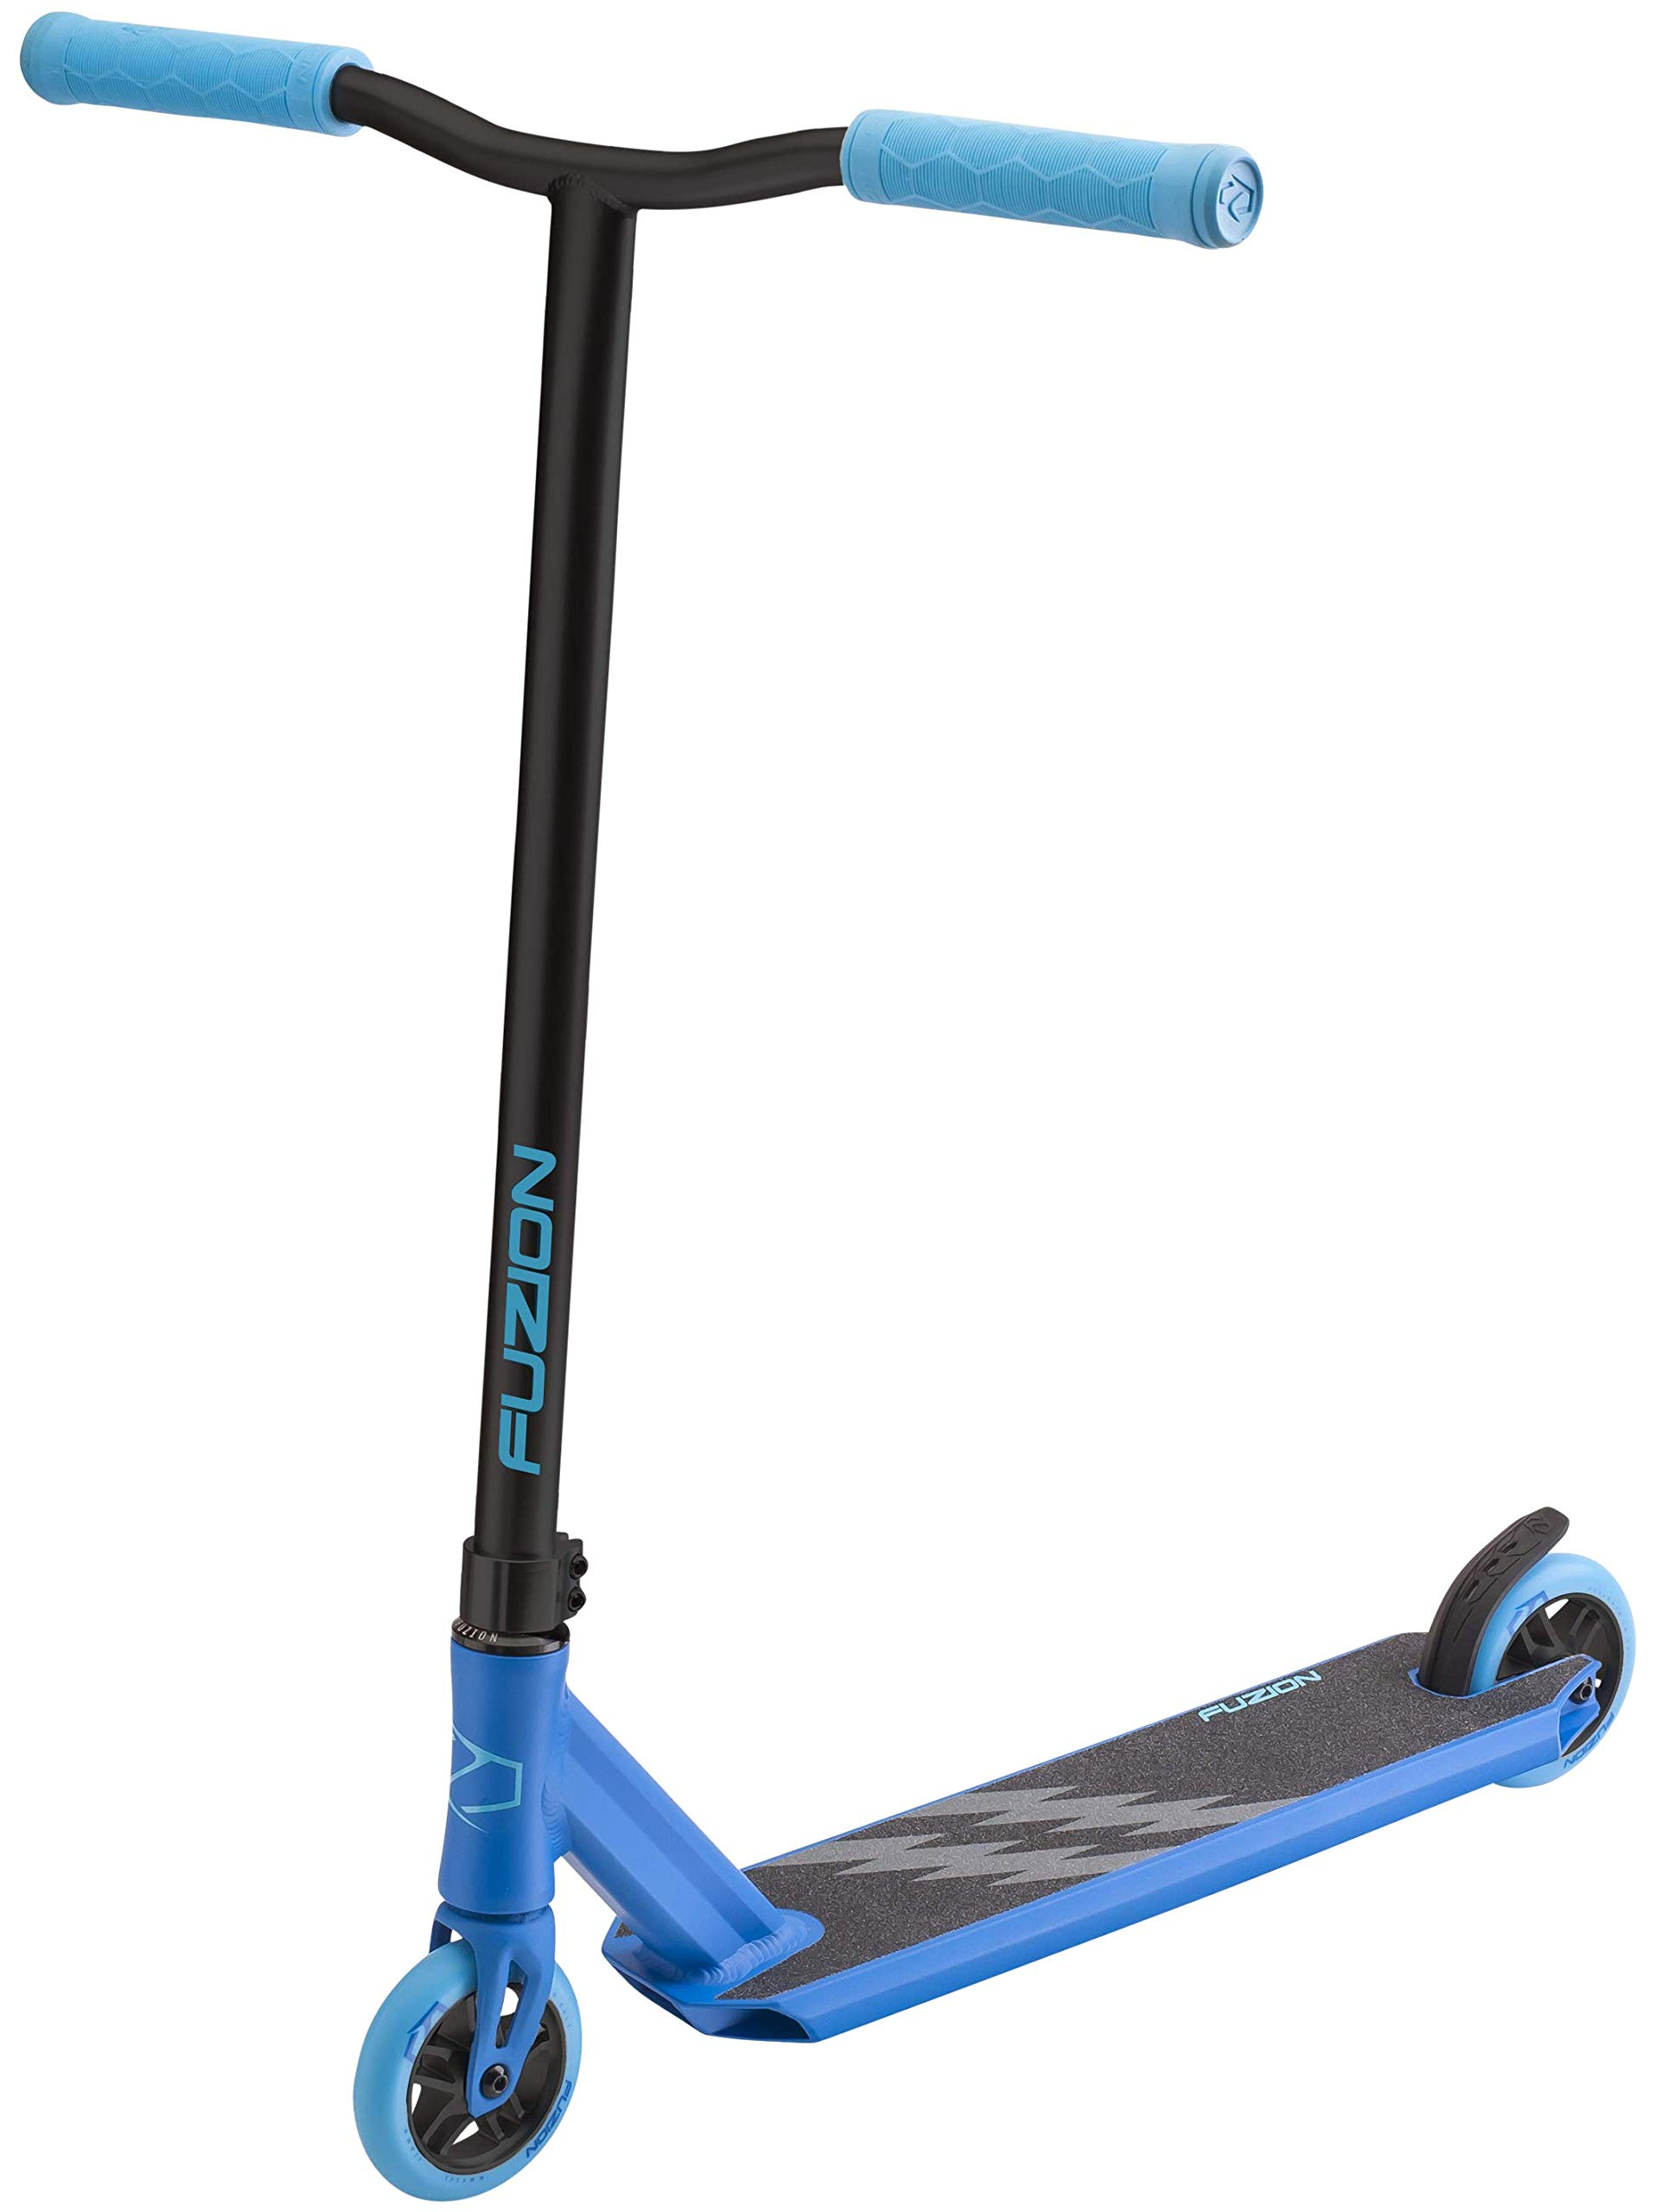 Fuzion Z250 Pro Scooter - All 4.37'' x 20.5'' Deck Dimensions - 110mm Aluminium Core Wheels - HIC Compression System -Chromoly T-Bars (2018 Blue)